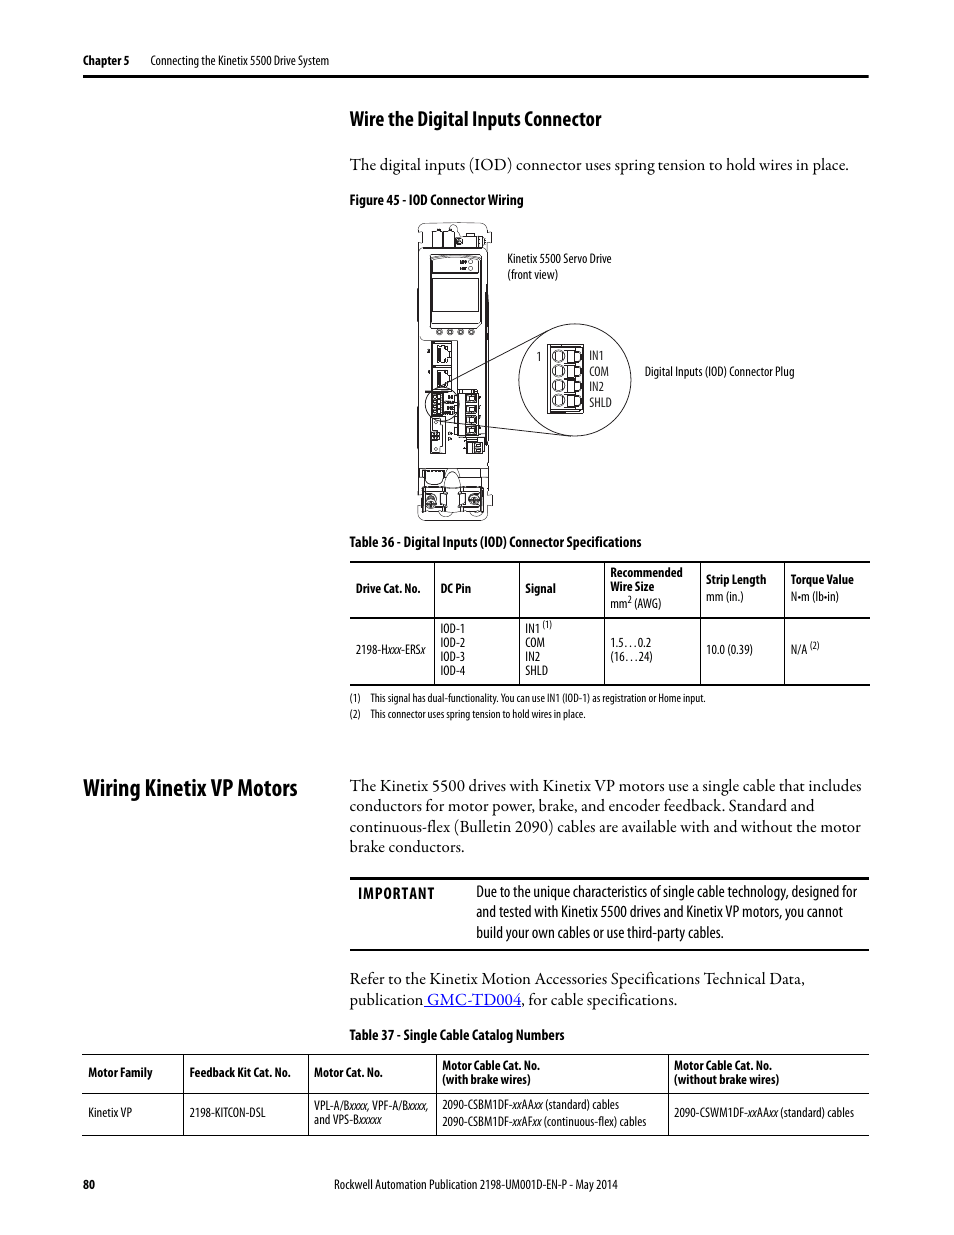 hight resolution of wire the digital inputs connector wiring kinetix vp motors rockwell automation 2198 hxxx kinetix 5500 servo drives user manual user manual page 80